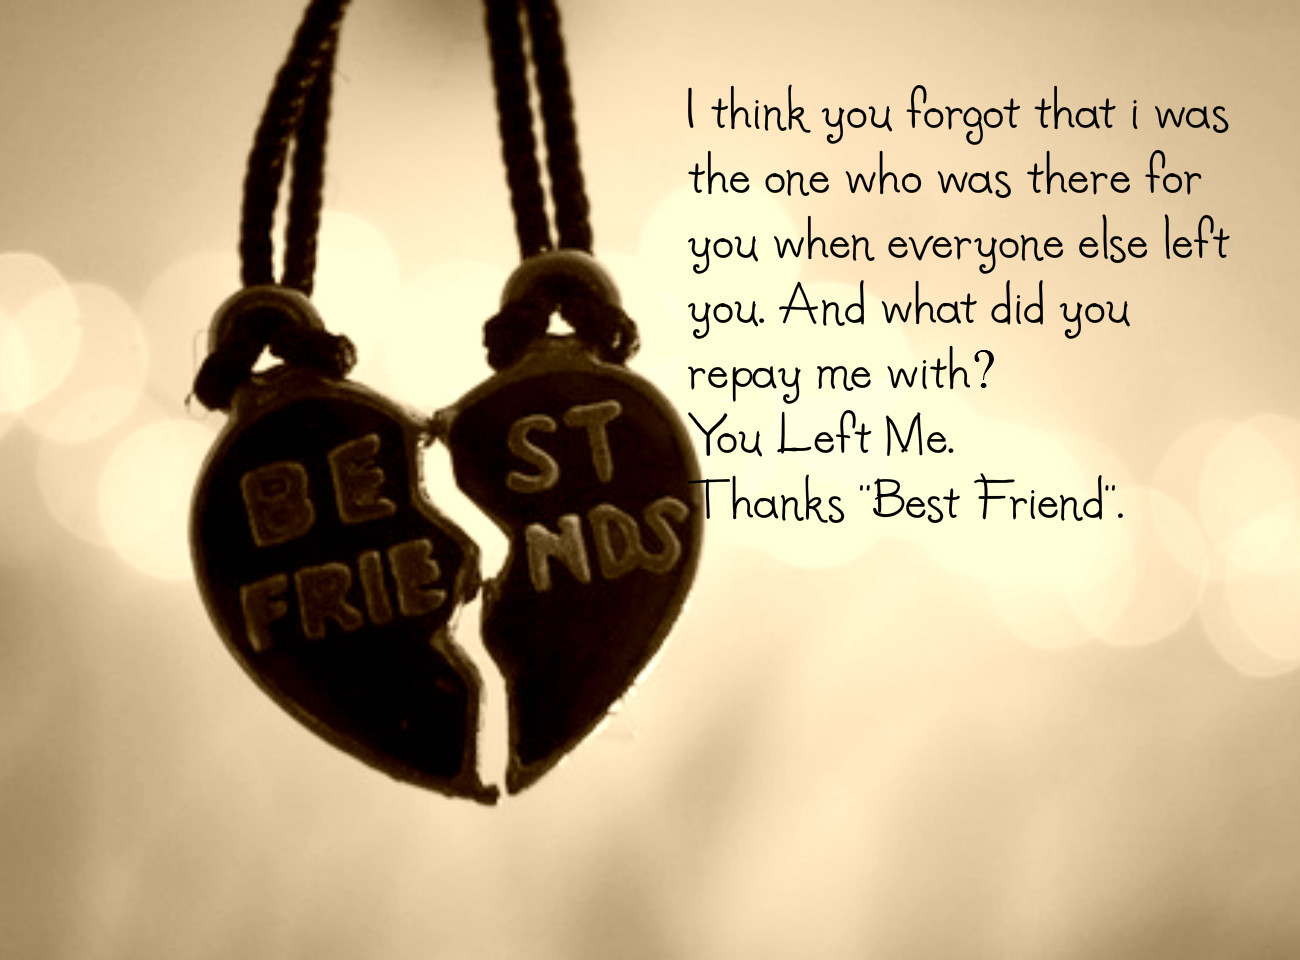 FRY-97: Pictures of Best Friend HD, 50 Top Wallpapers